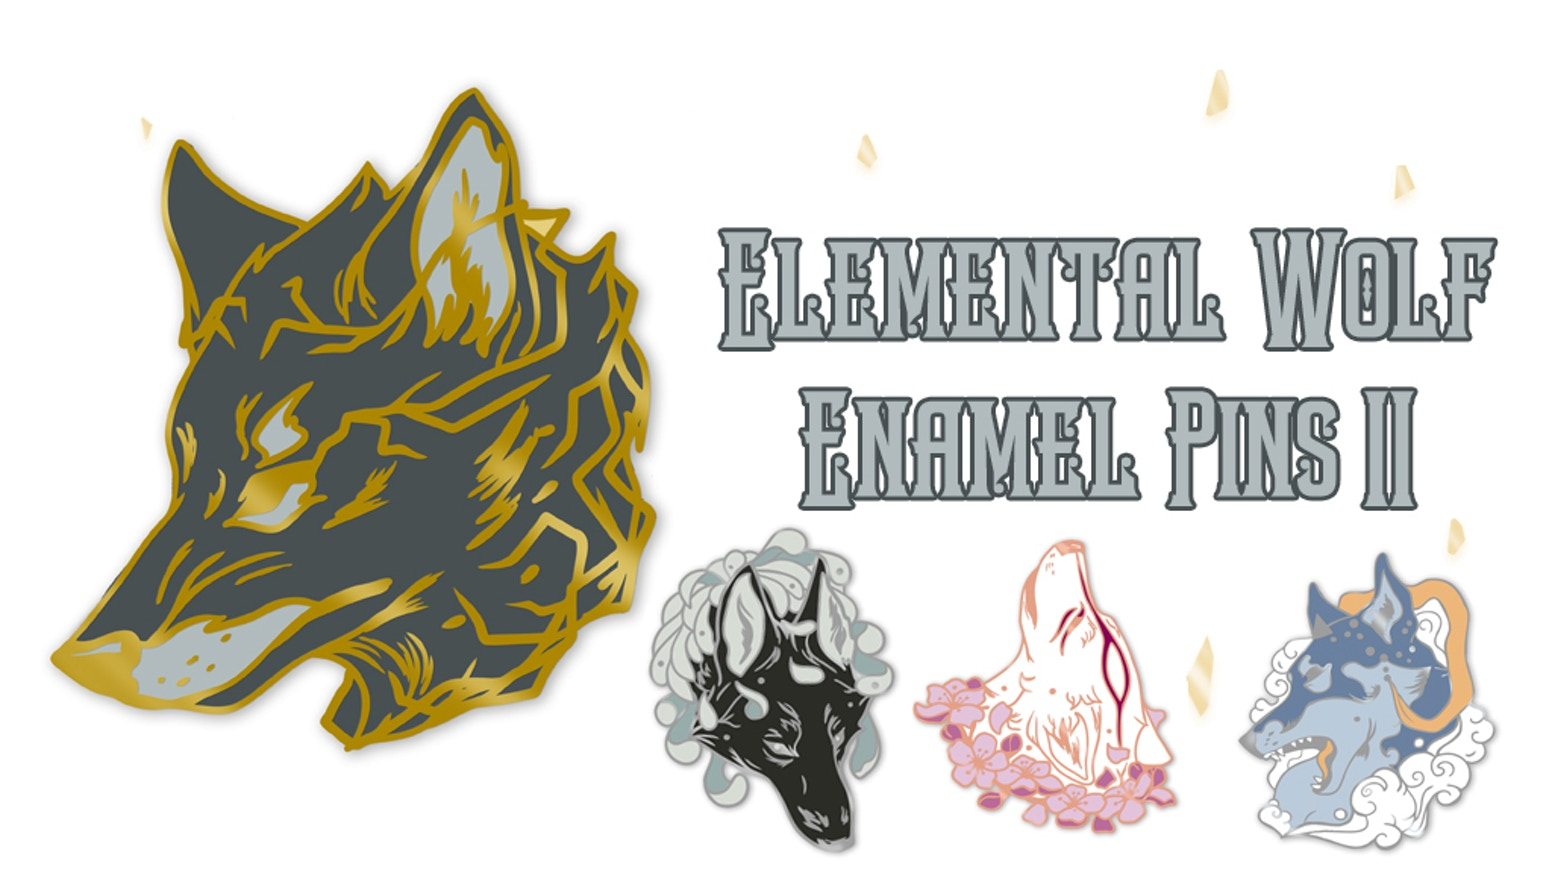 An extension of my first Elemental Wolf series. Let's welcome these new wolves to the pack!